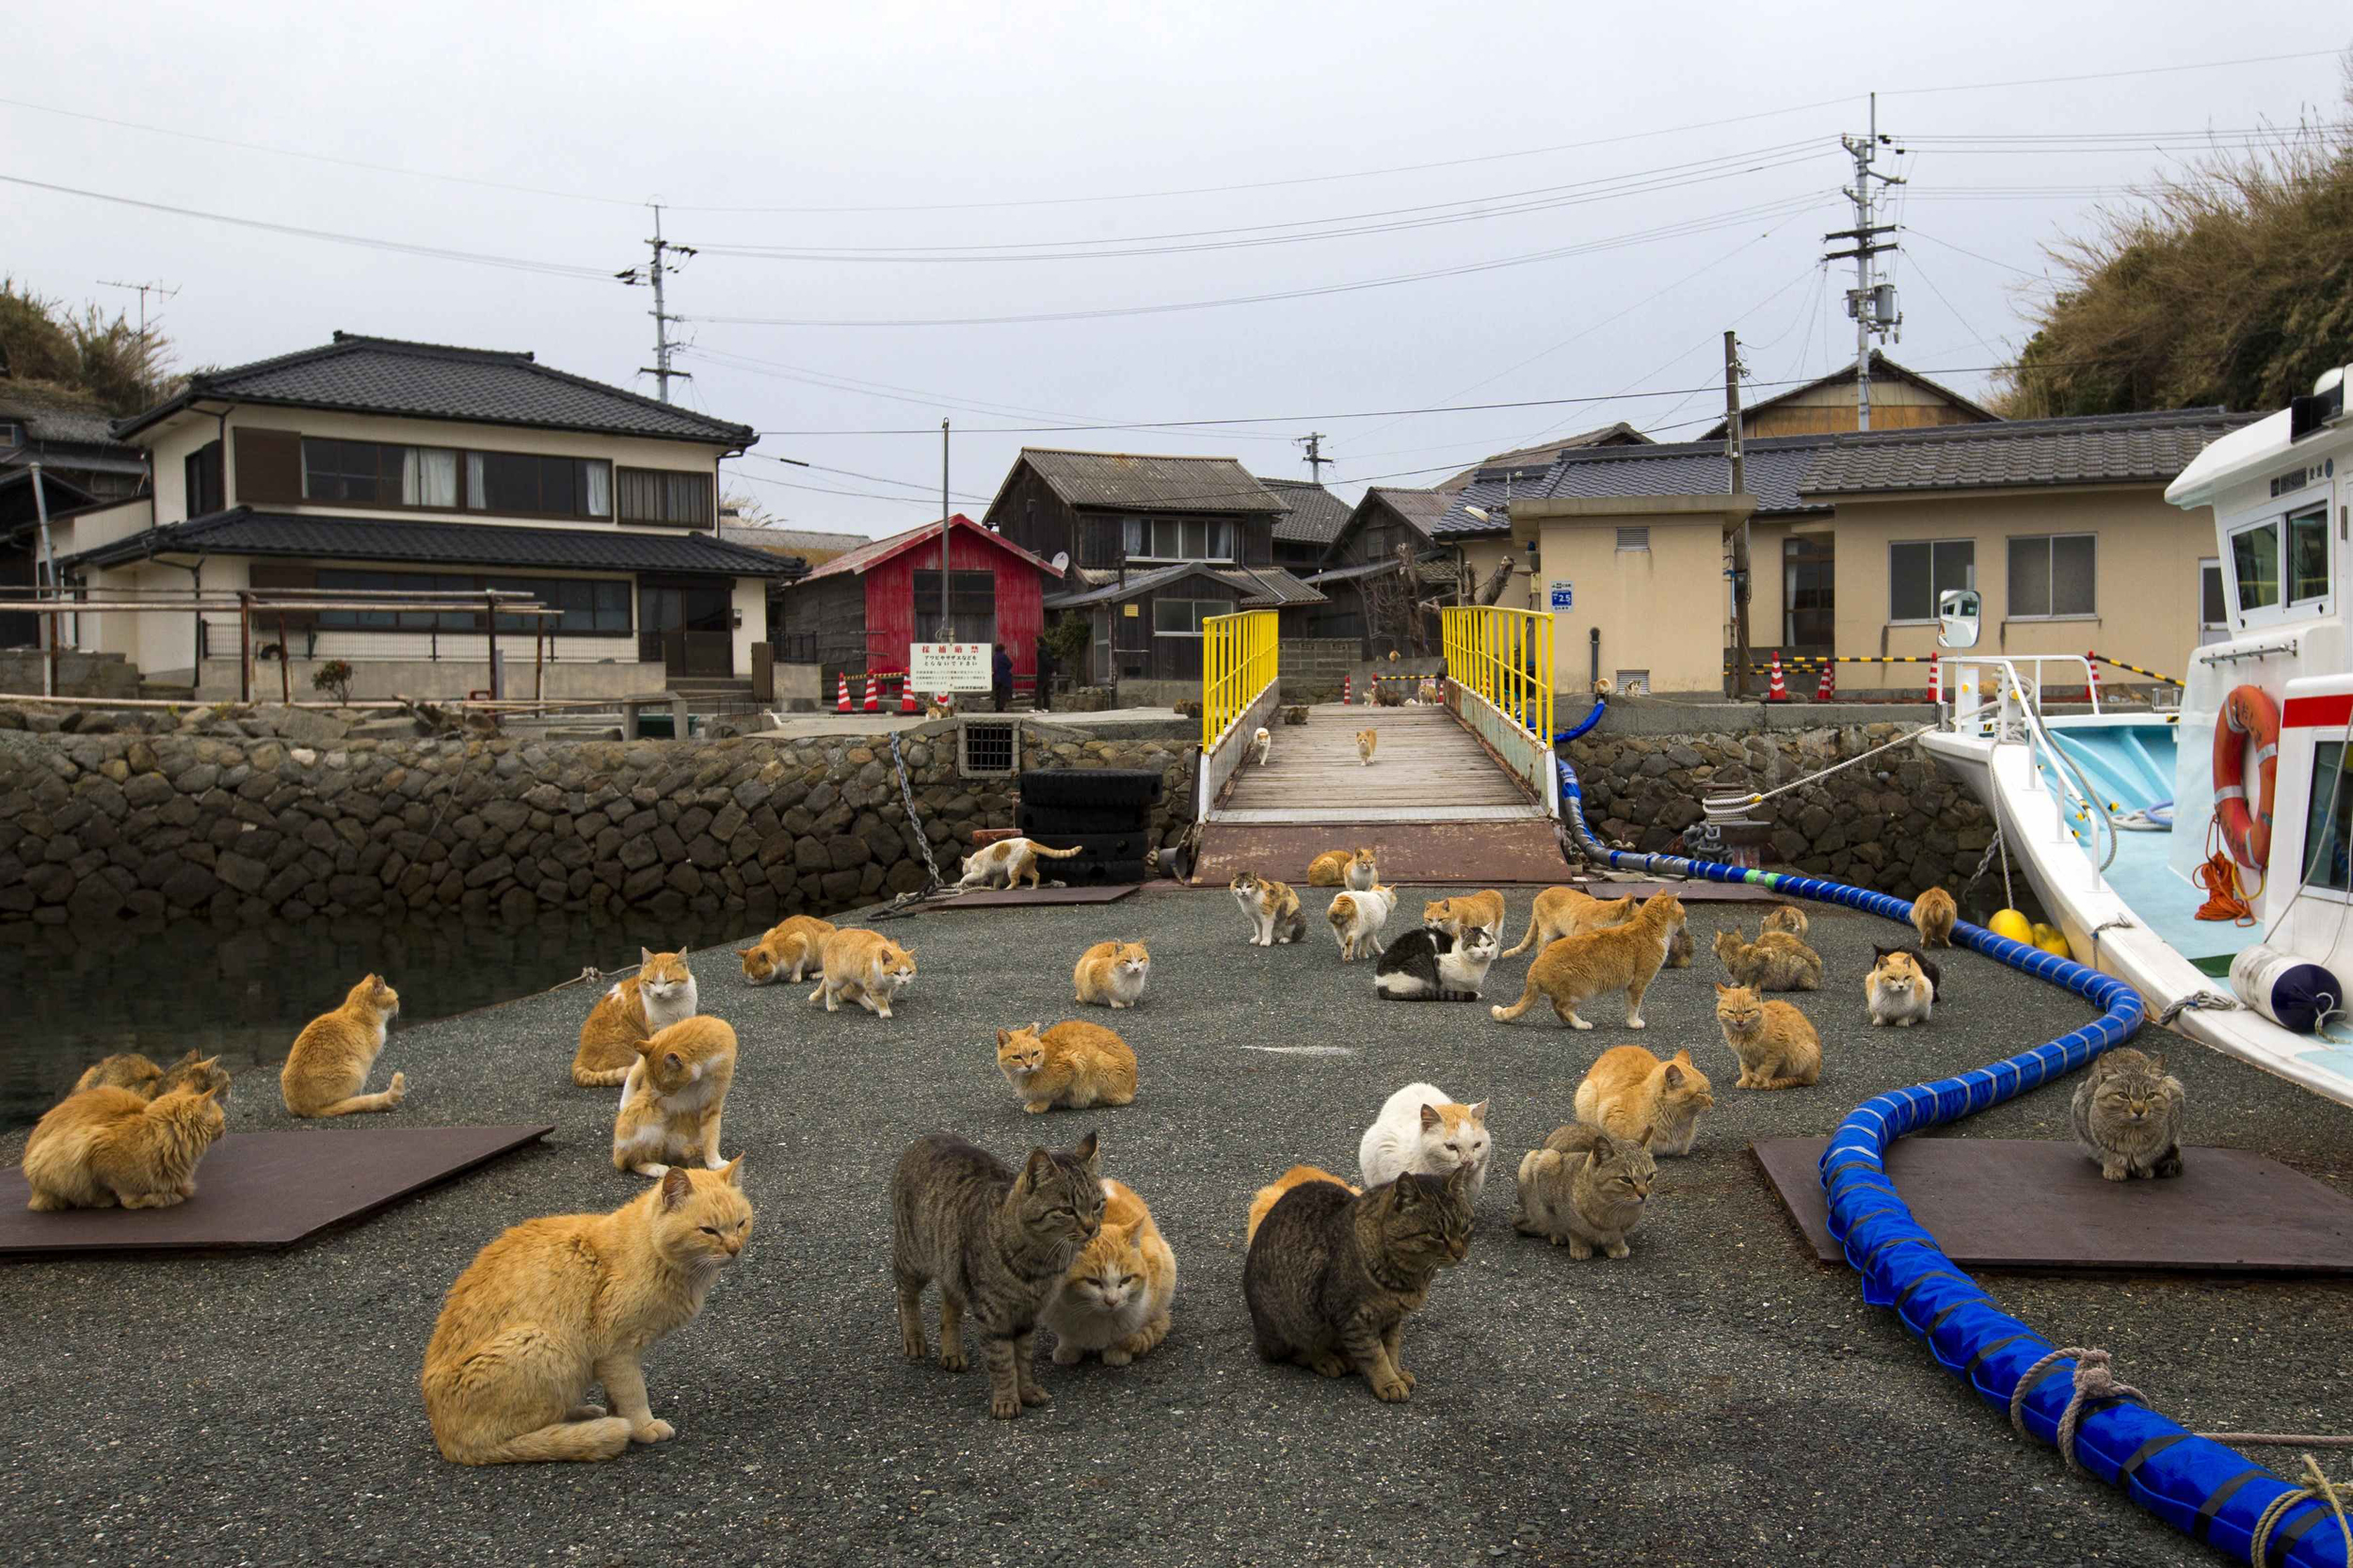 Image: A clowder of cats crowd the wharf on Aoshima Island in Ehime prefecture in southern Japan